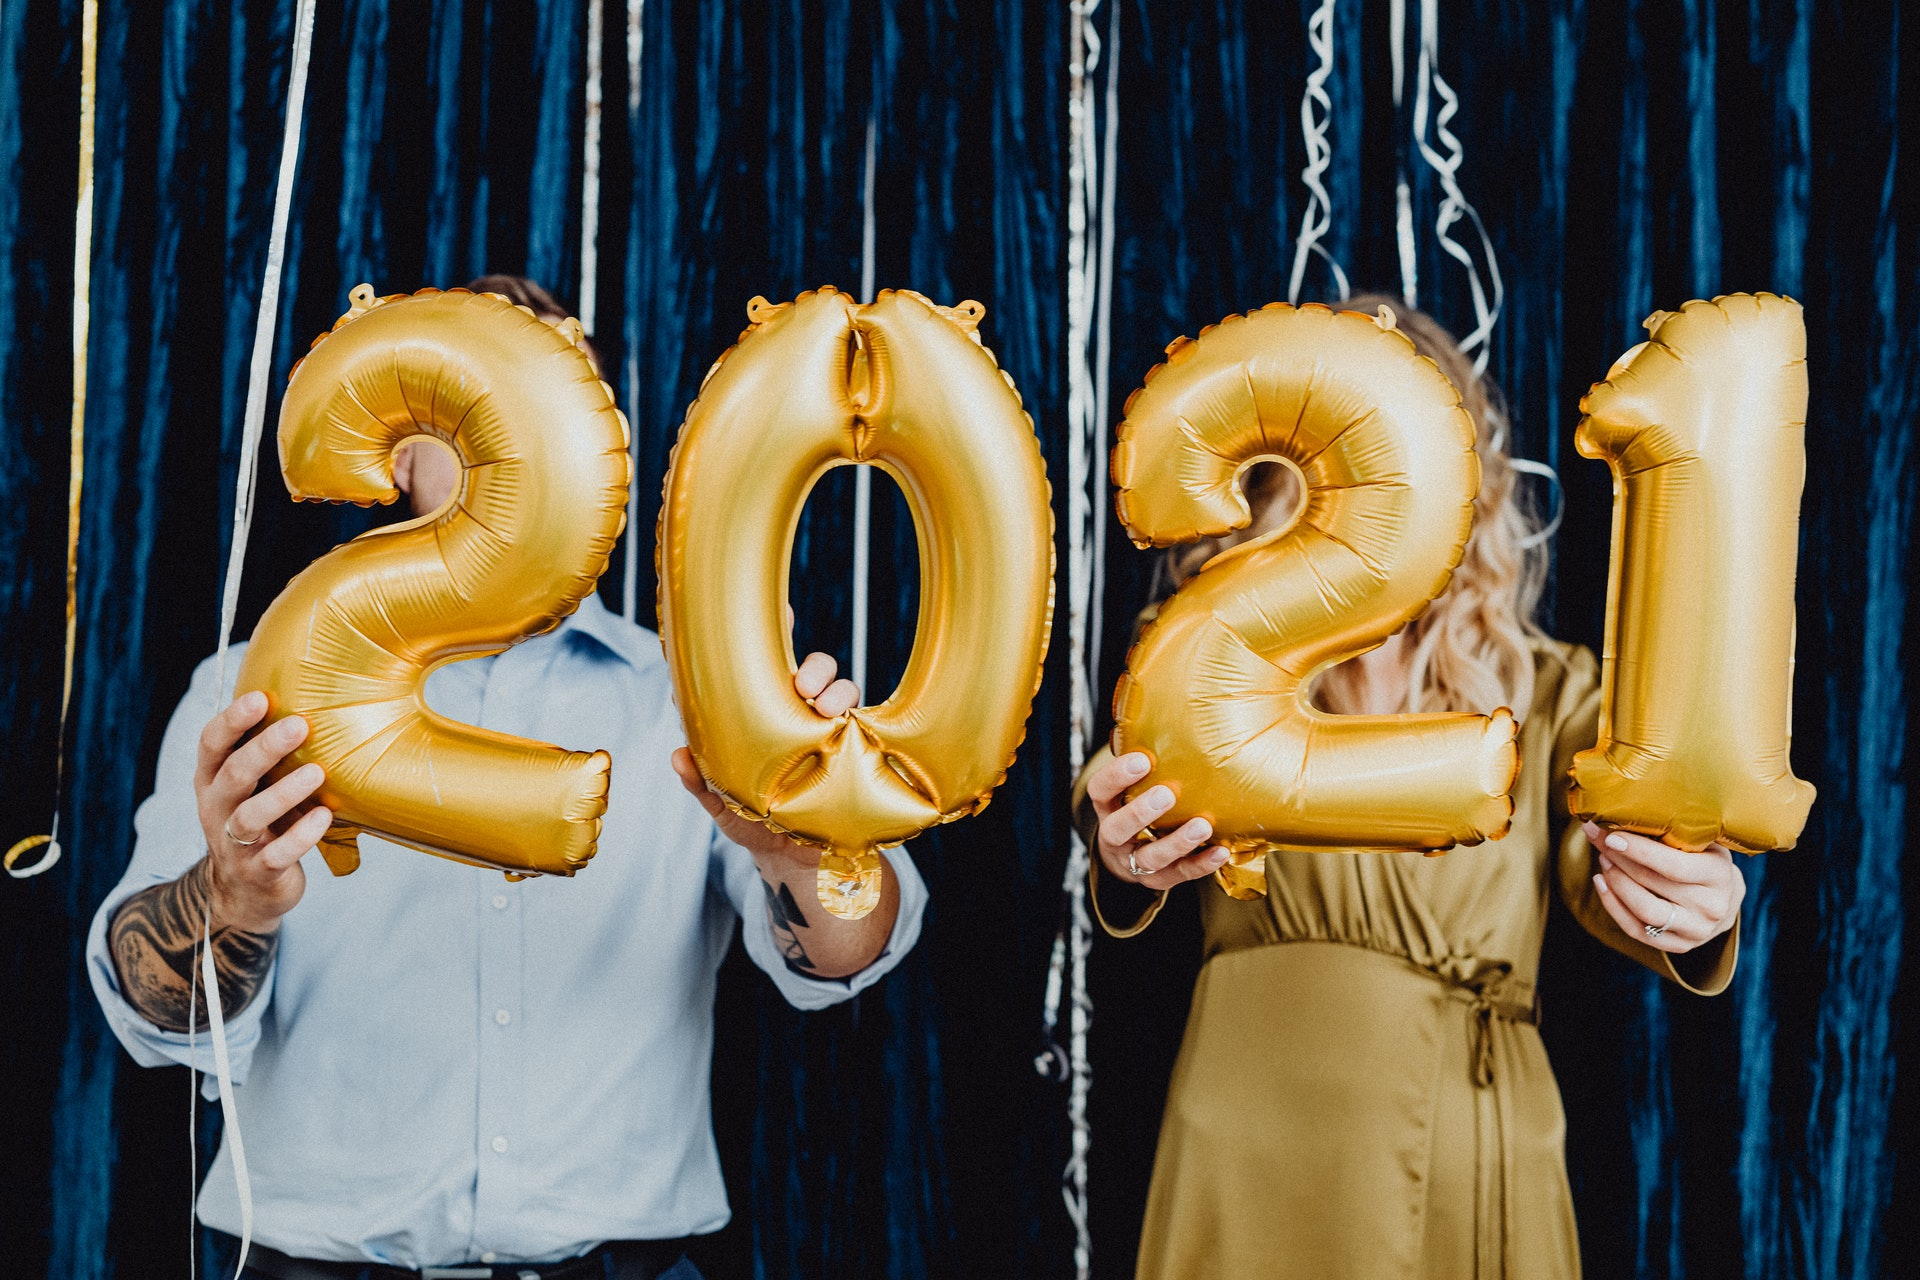 a man and a woman holding 2021 golden balloons